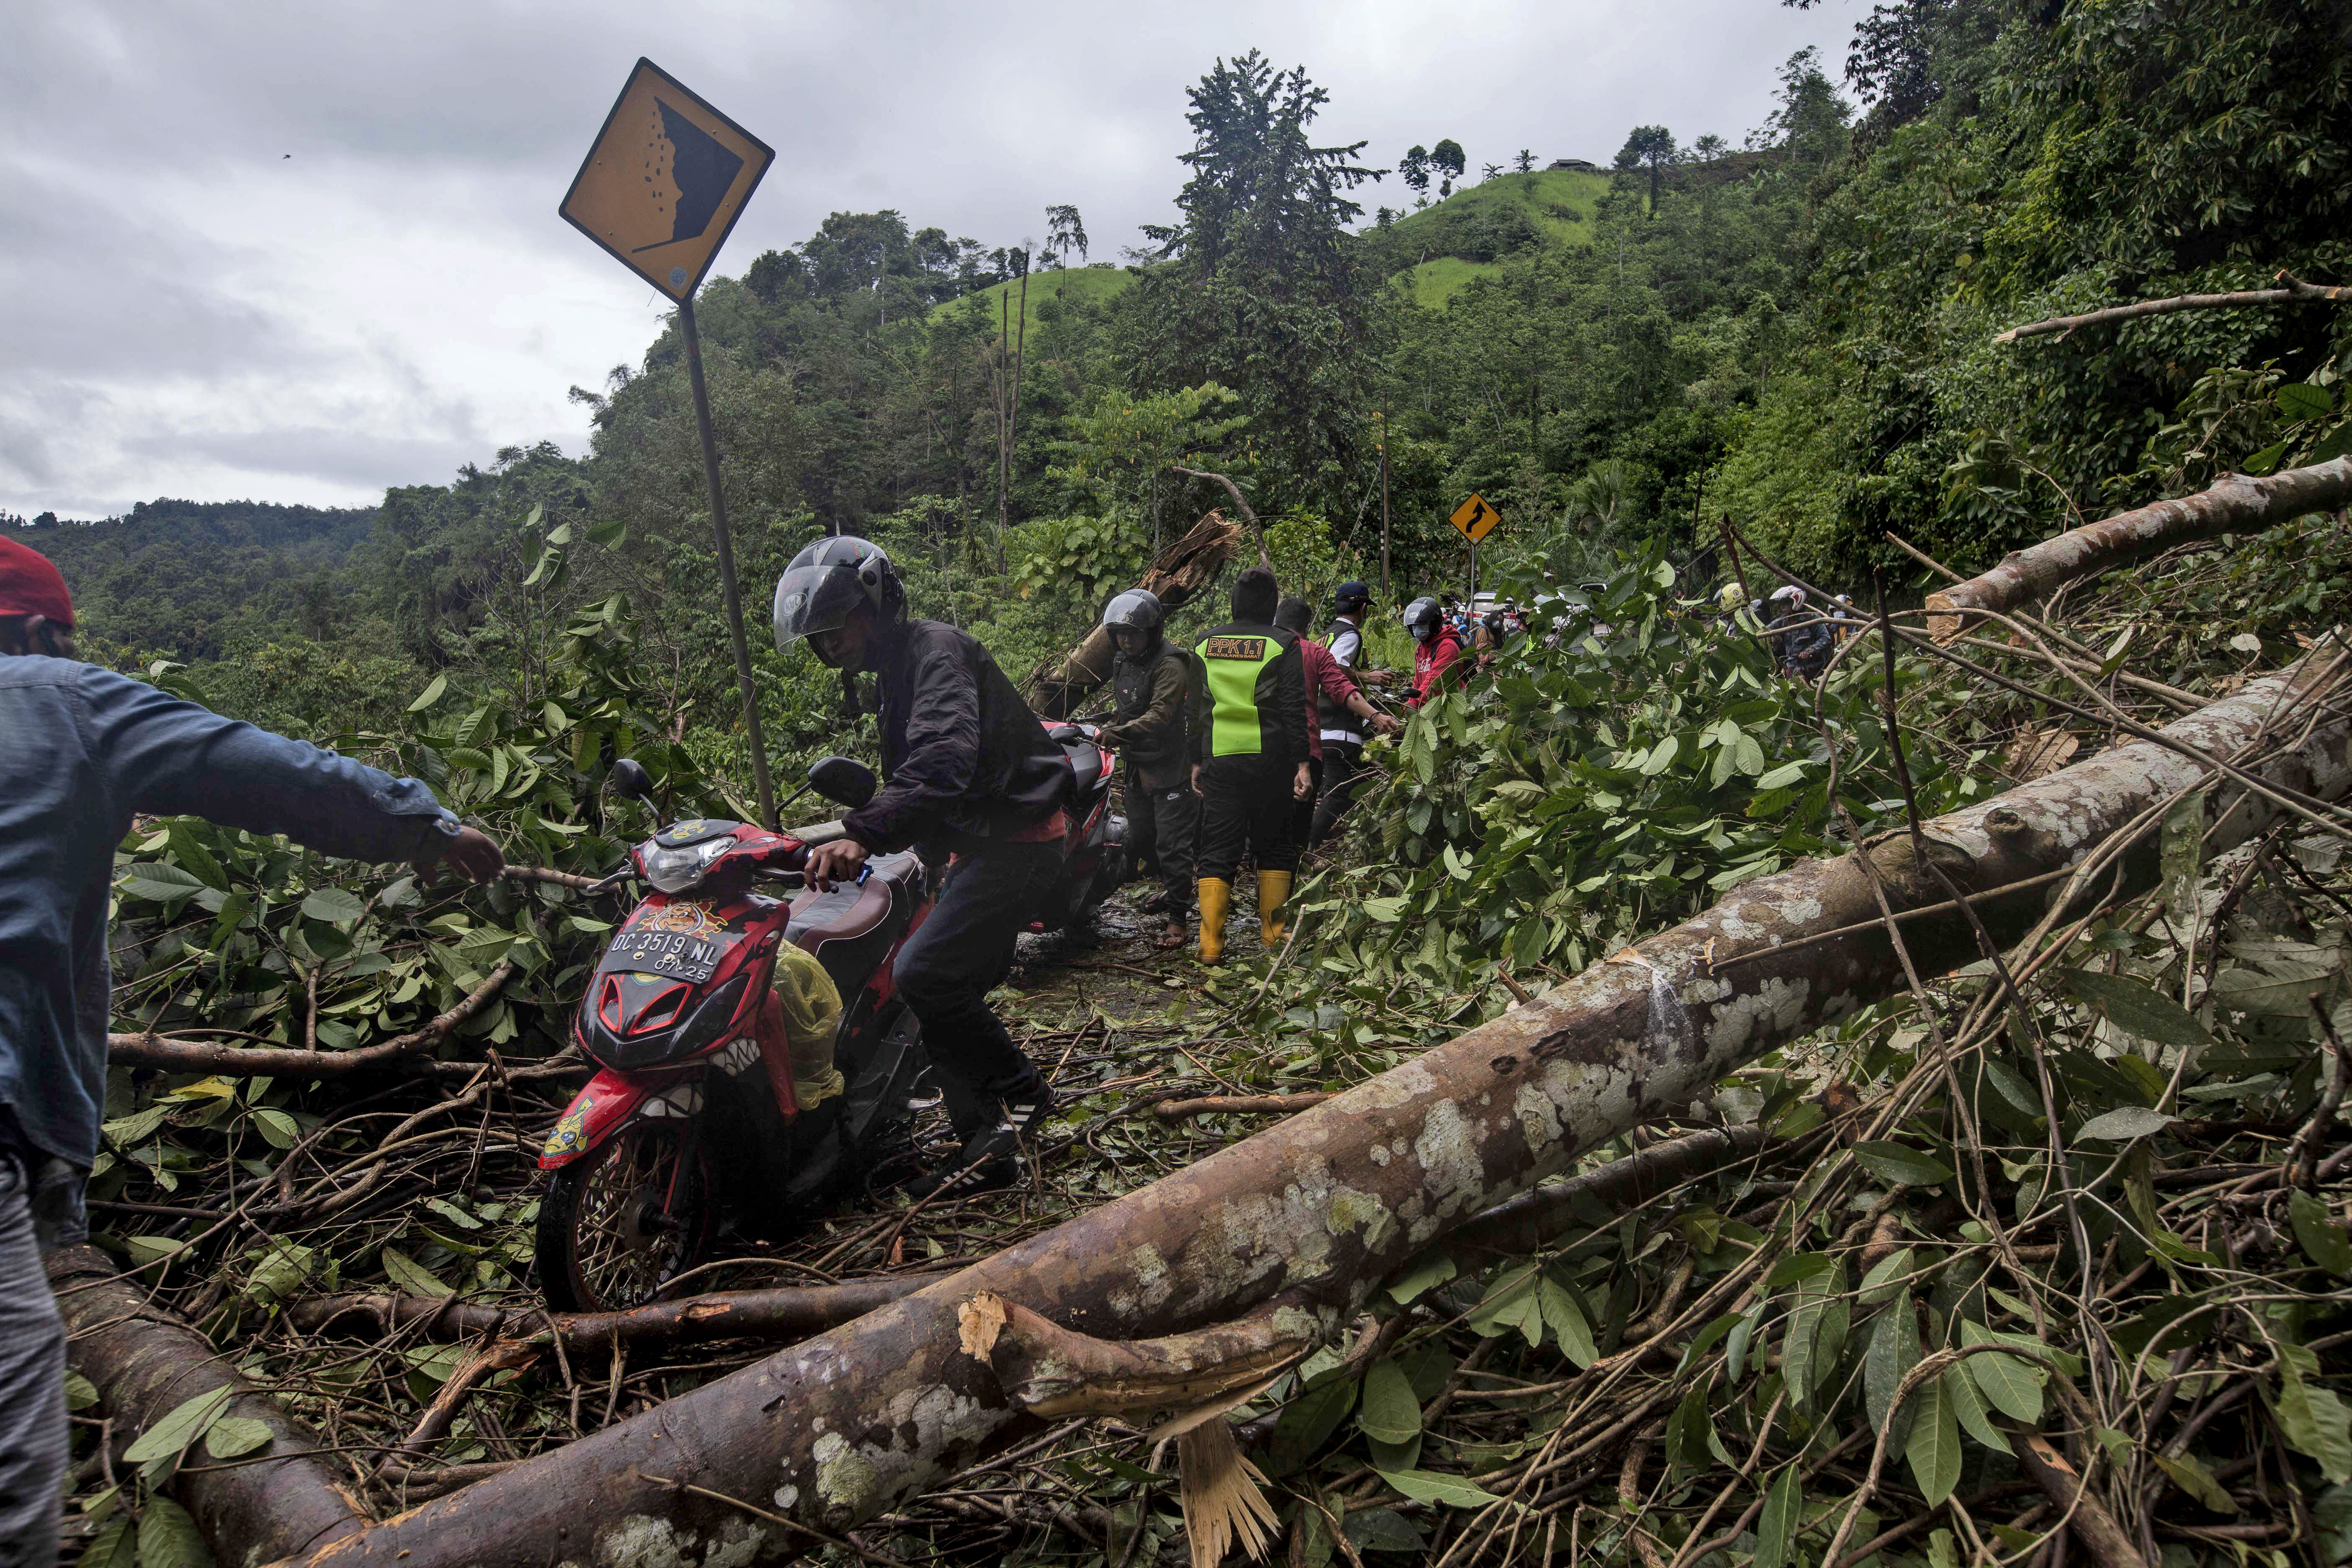 Motorists make their way through a road affected by an earthquake-triggered landslide near Mamuju, West Sulawesi, Indonesia, on Jan. 16, 2021.